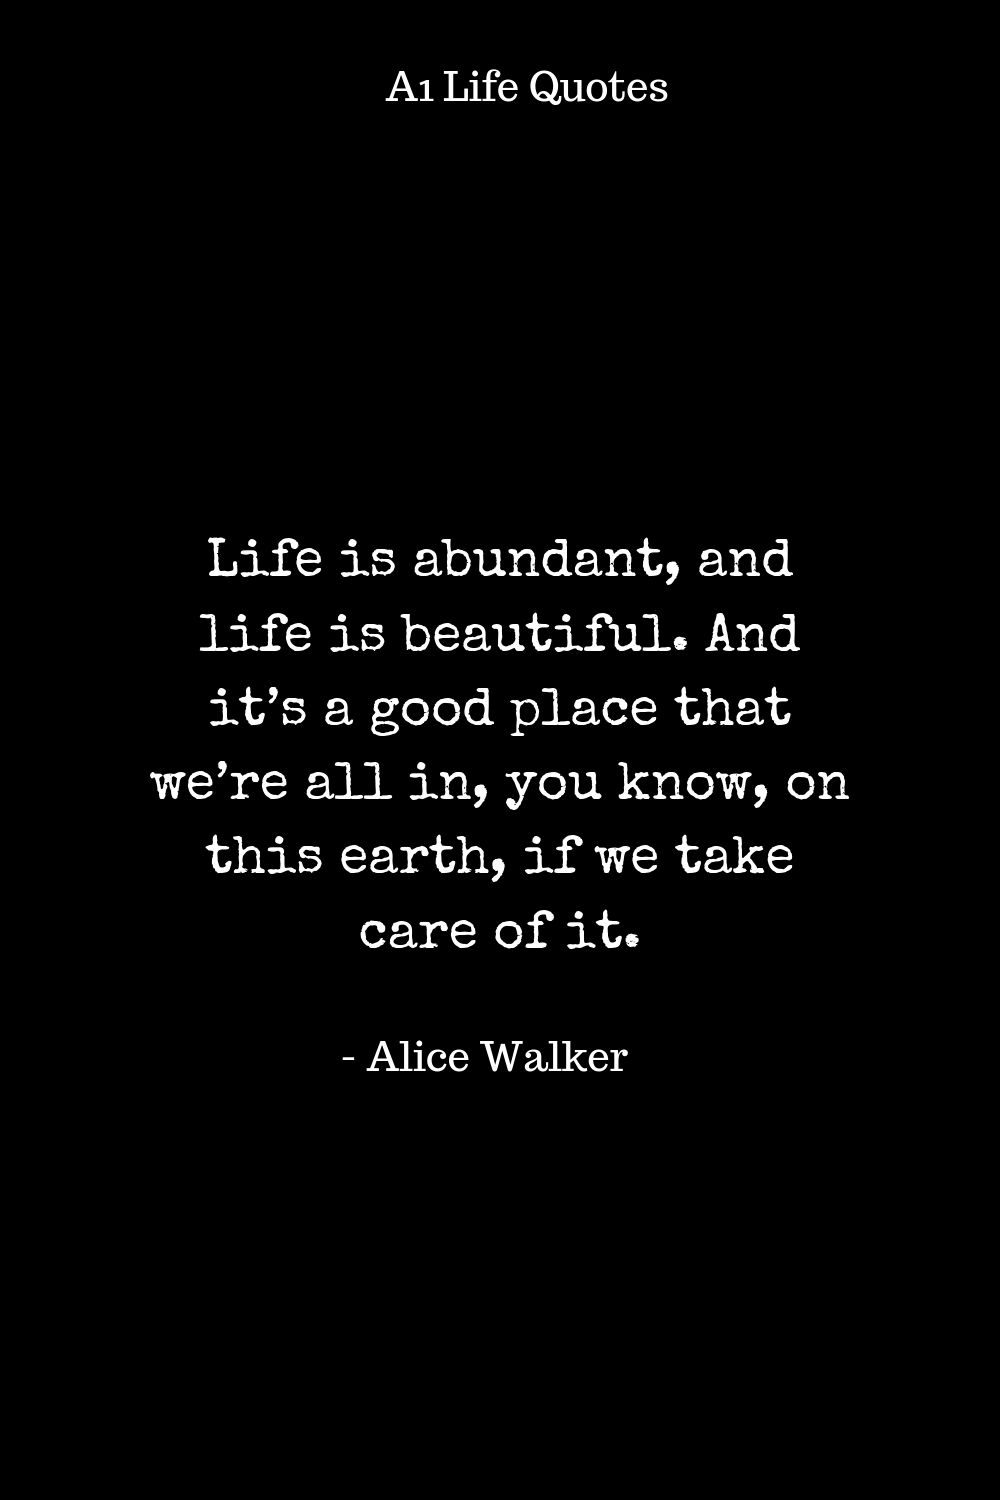 Life Is Beautiful Quotes with Images